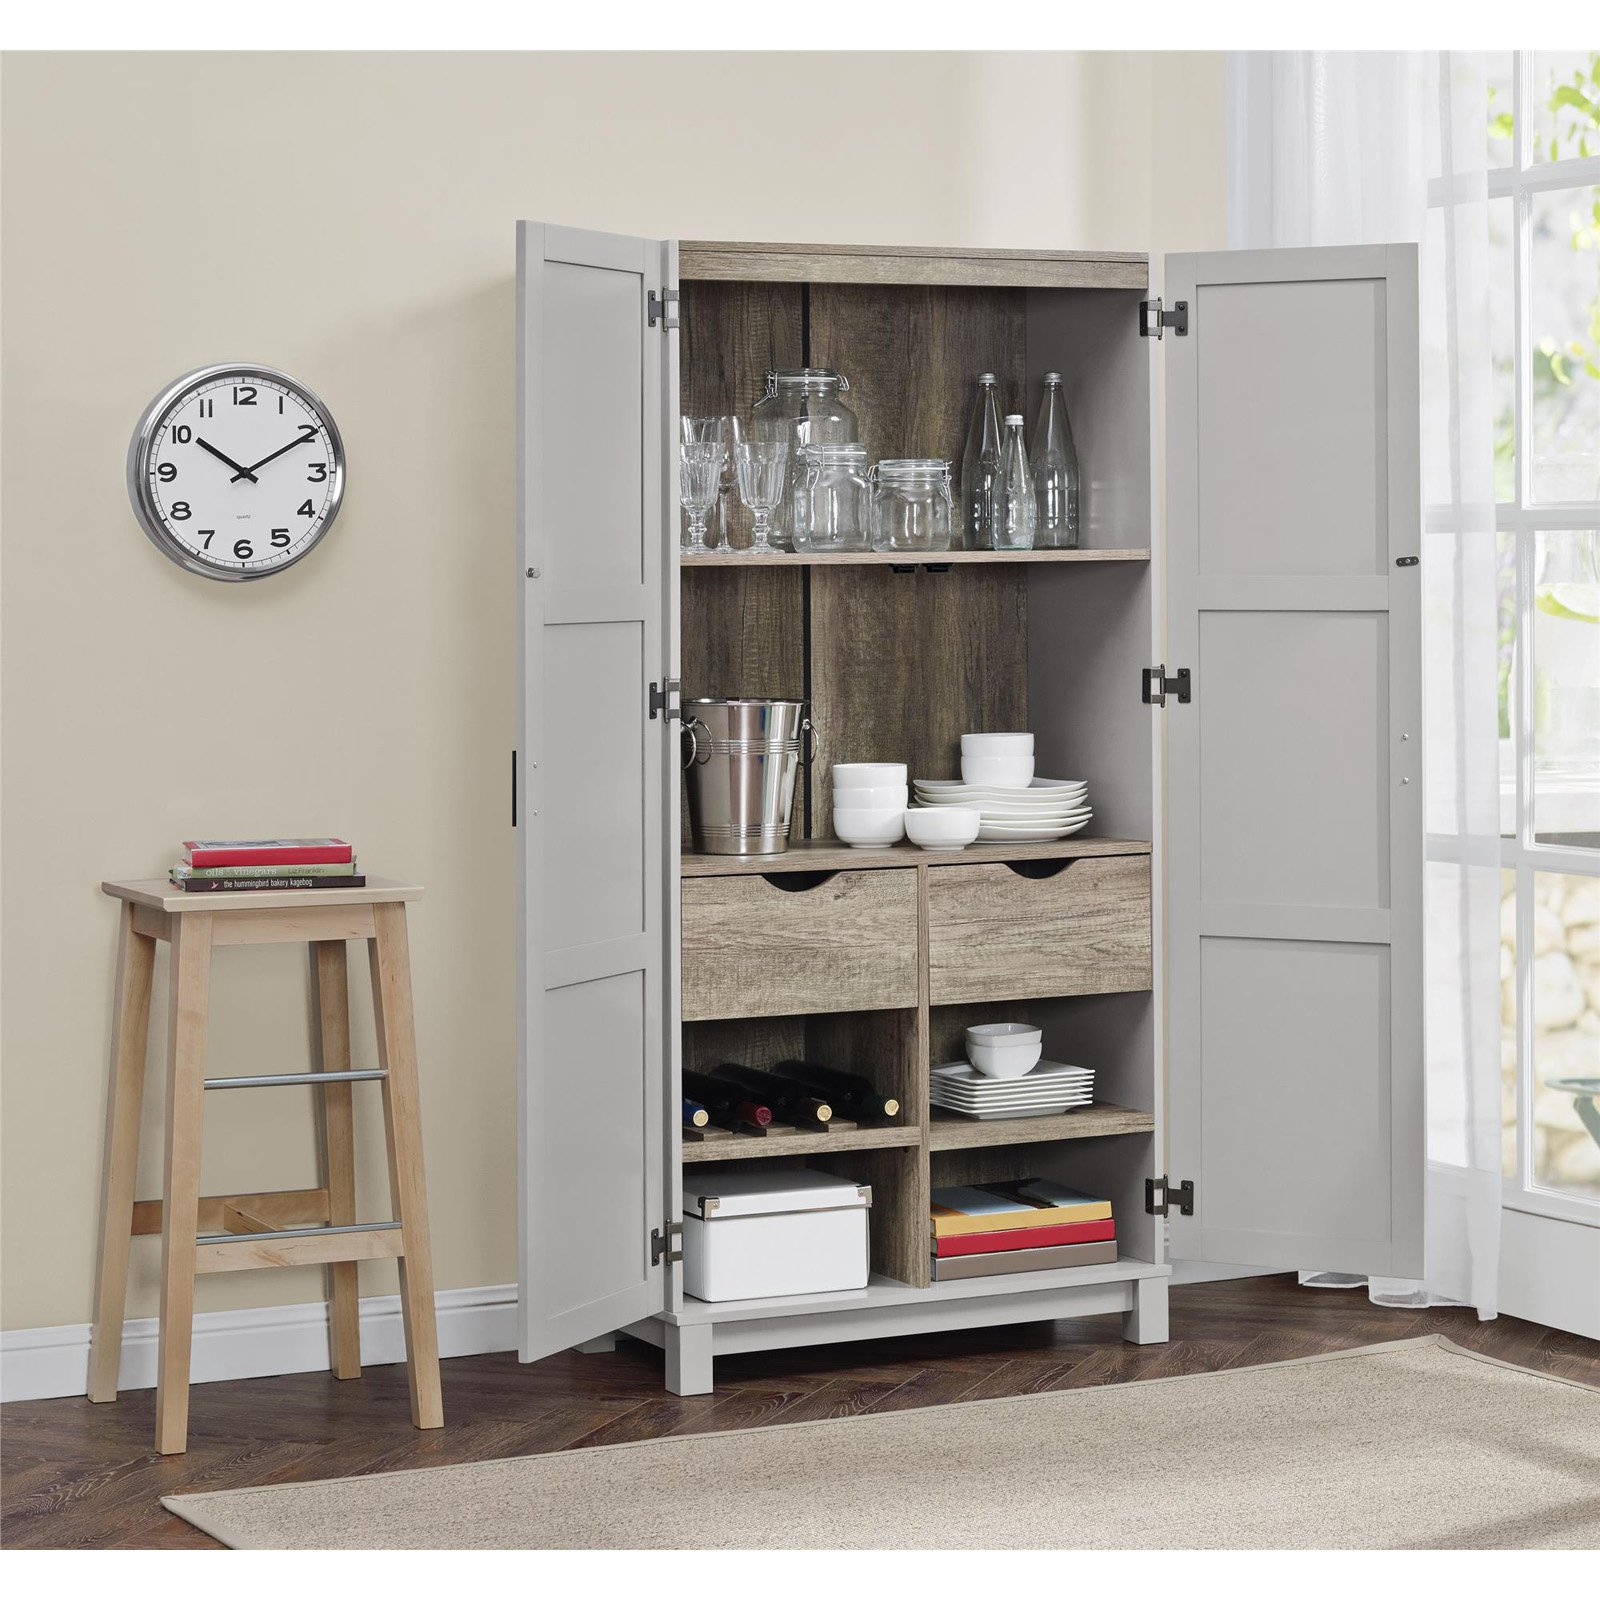 Altra Carver 64 in. Storage Cabinet